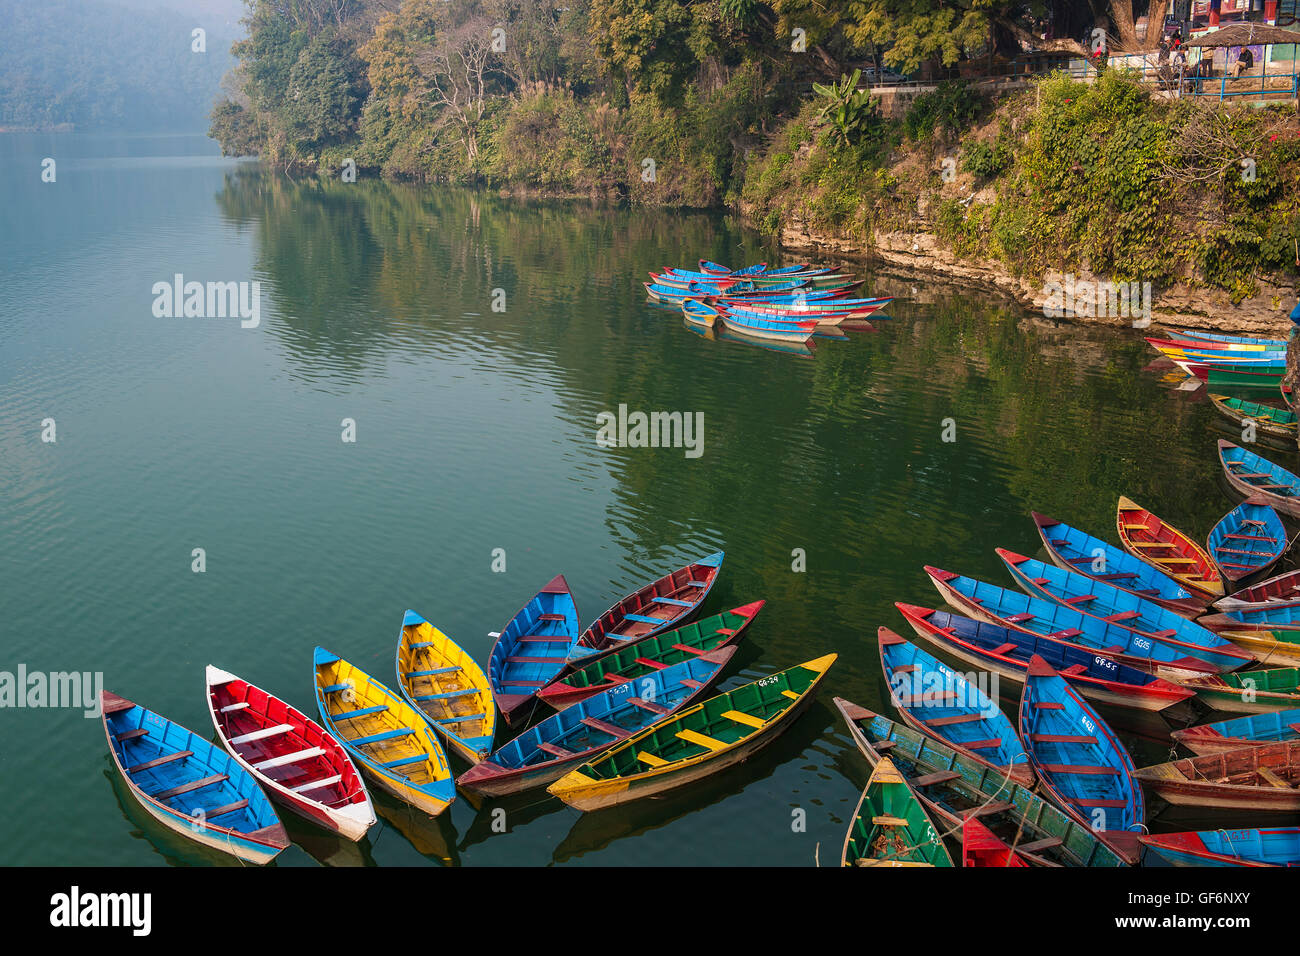 Nepal, Pokhara, local lake, boats - Stock Image